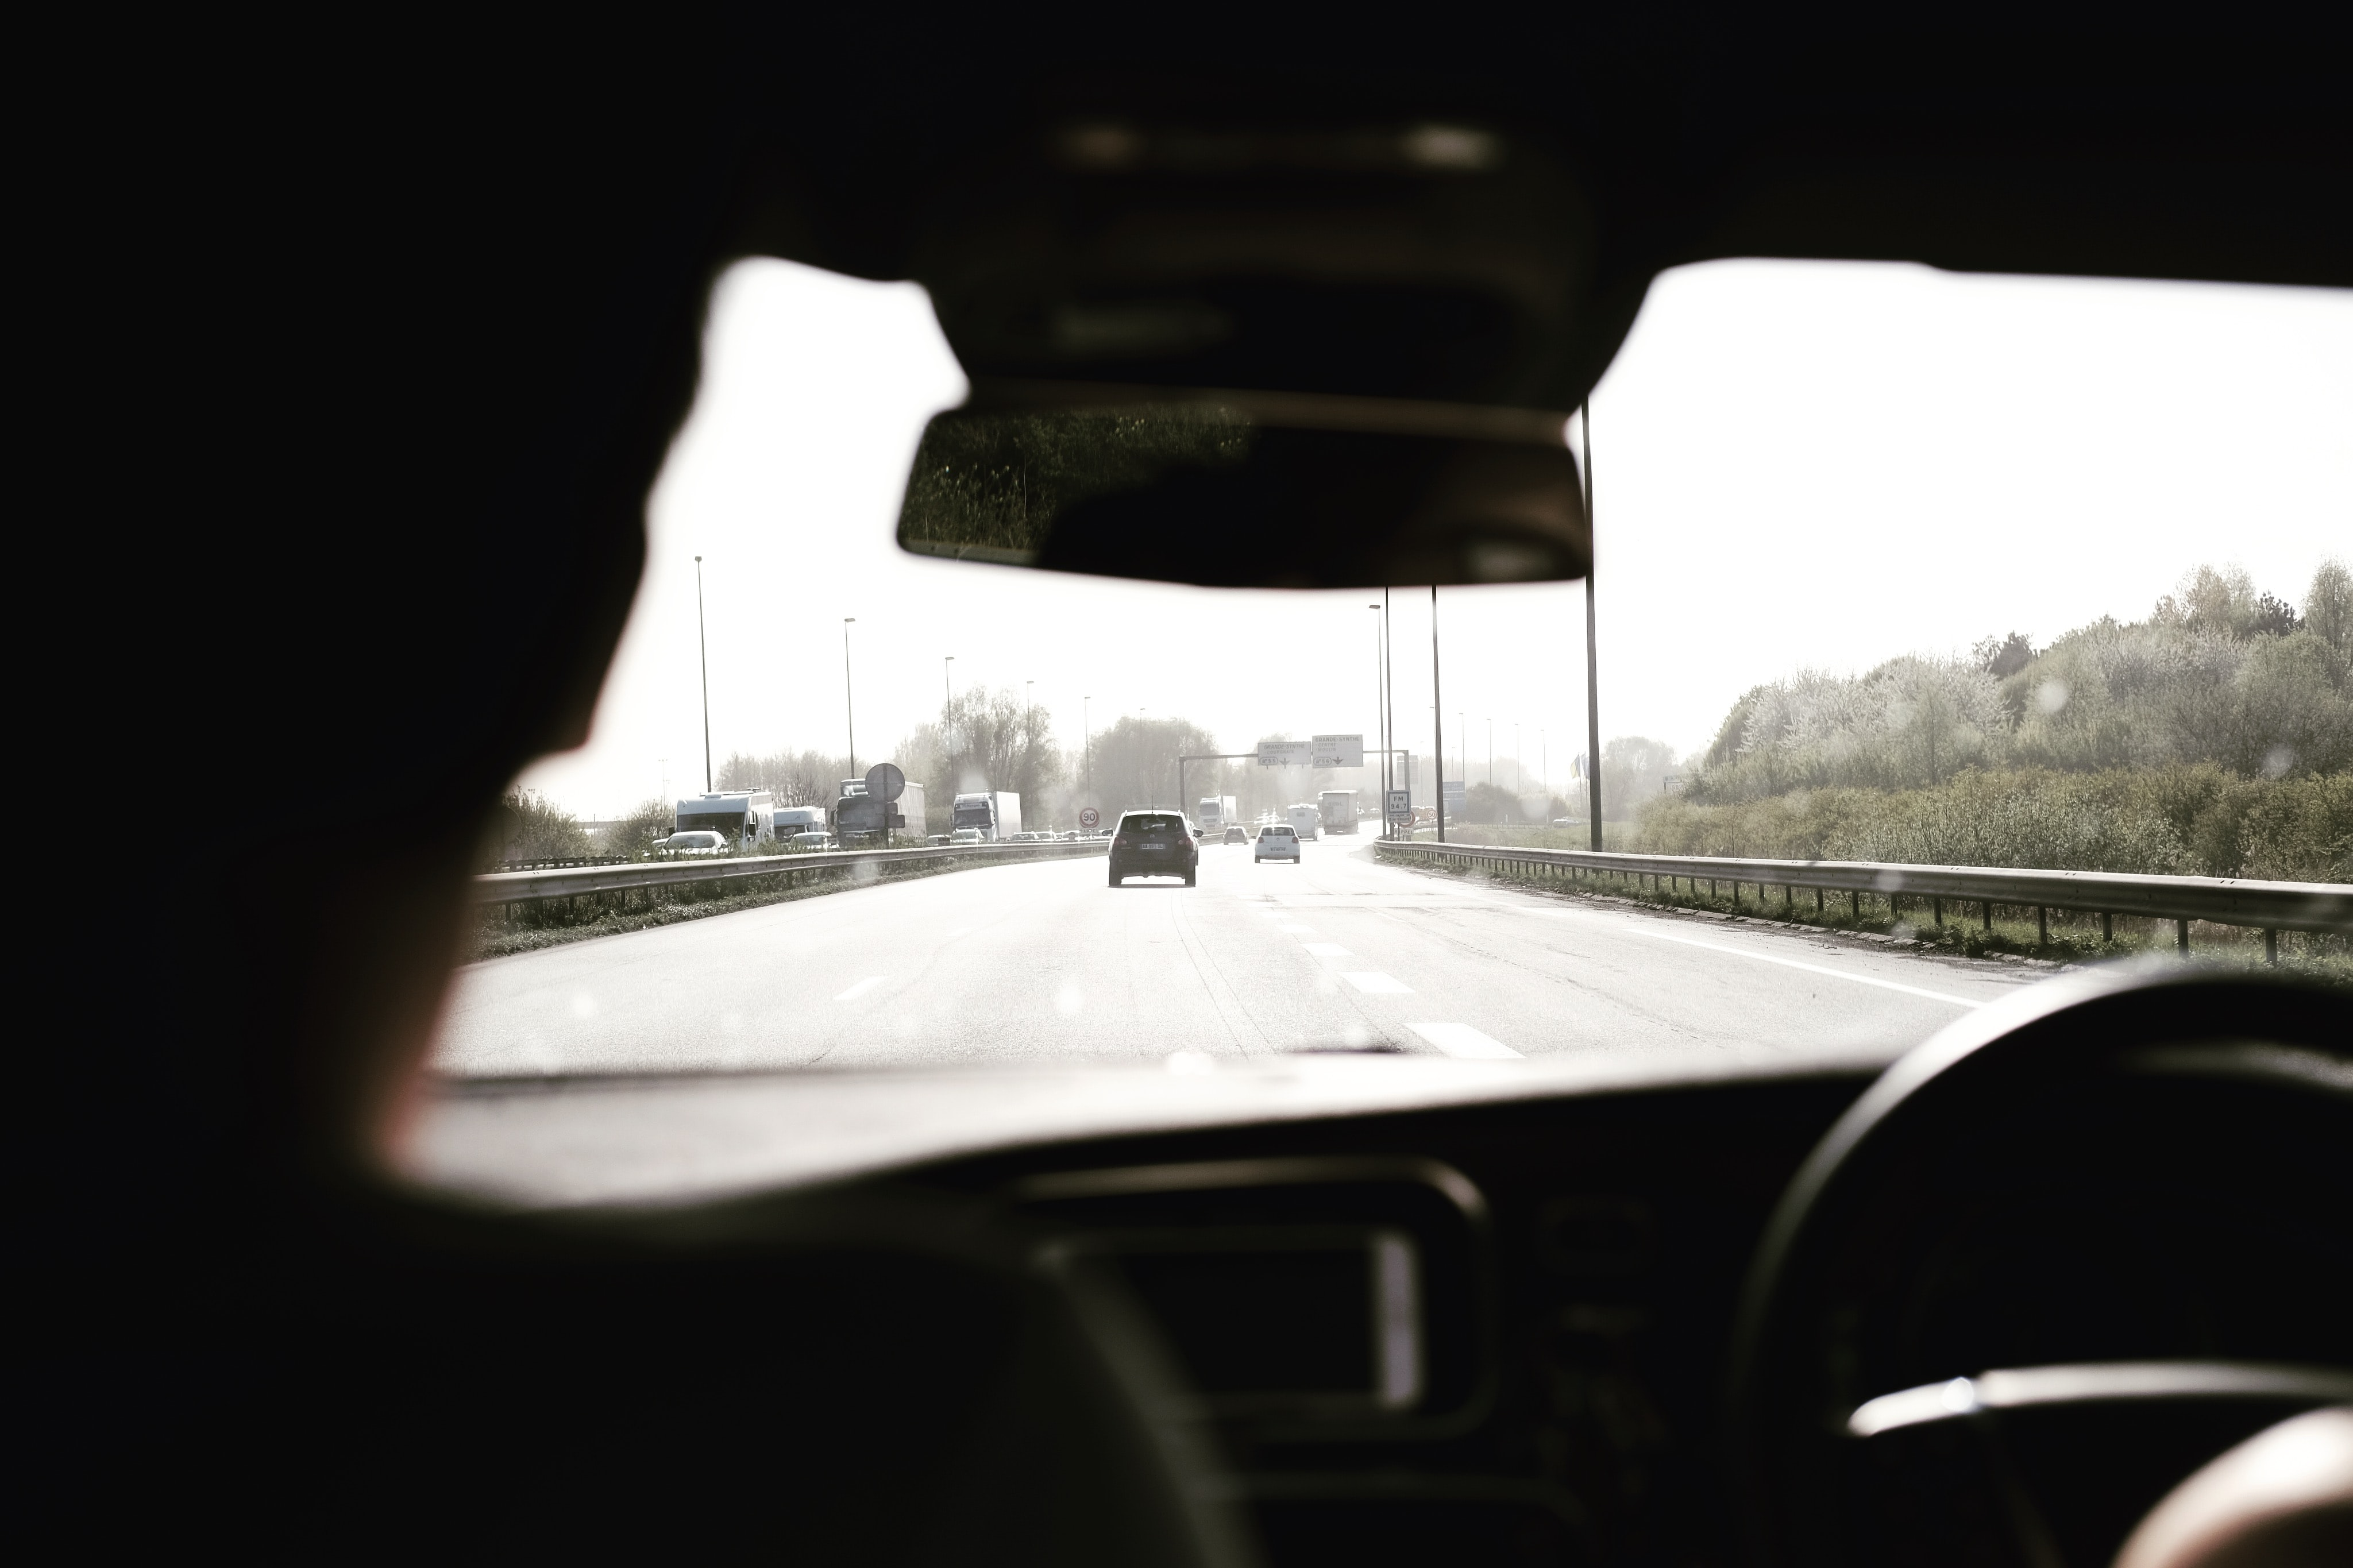 A view from the backseat on a highway in De Haan